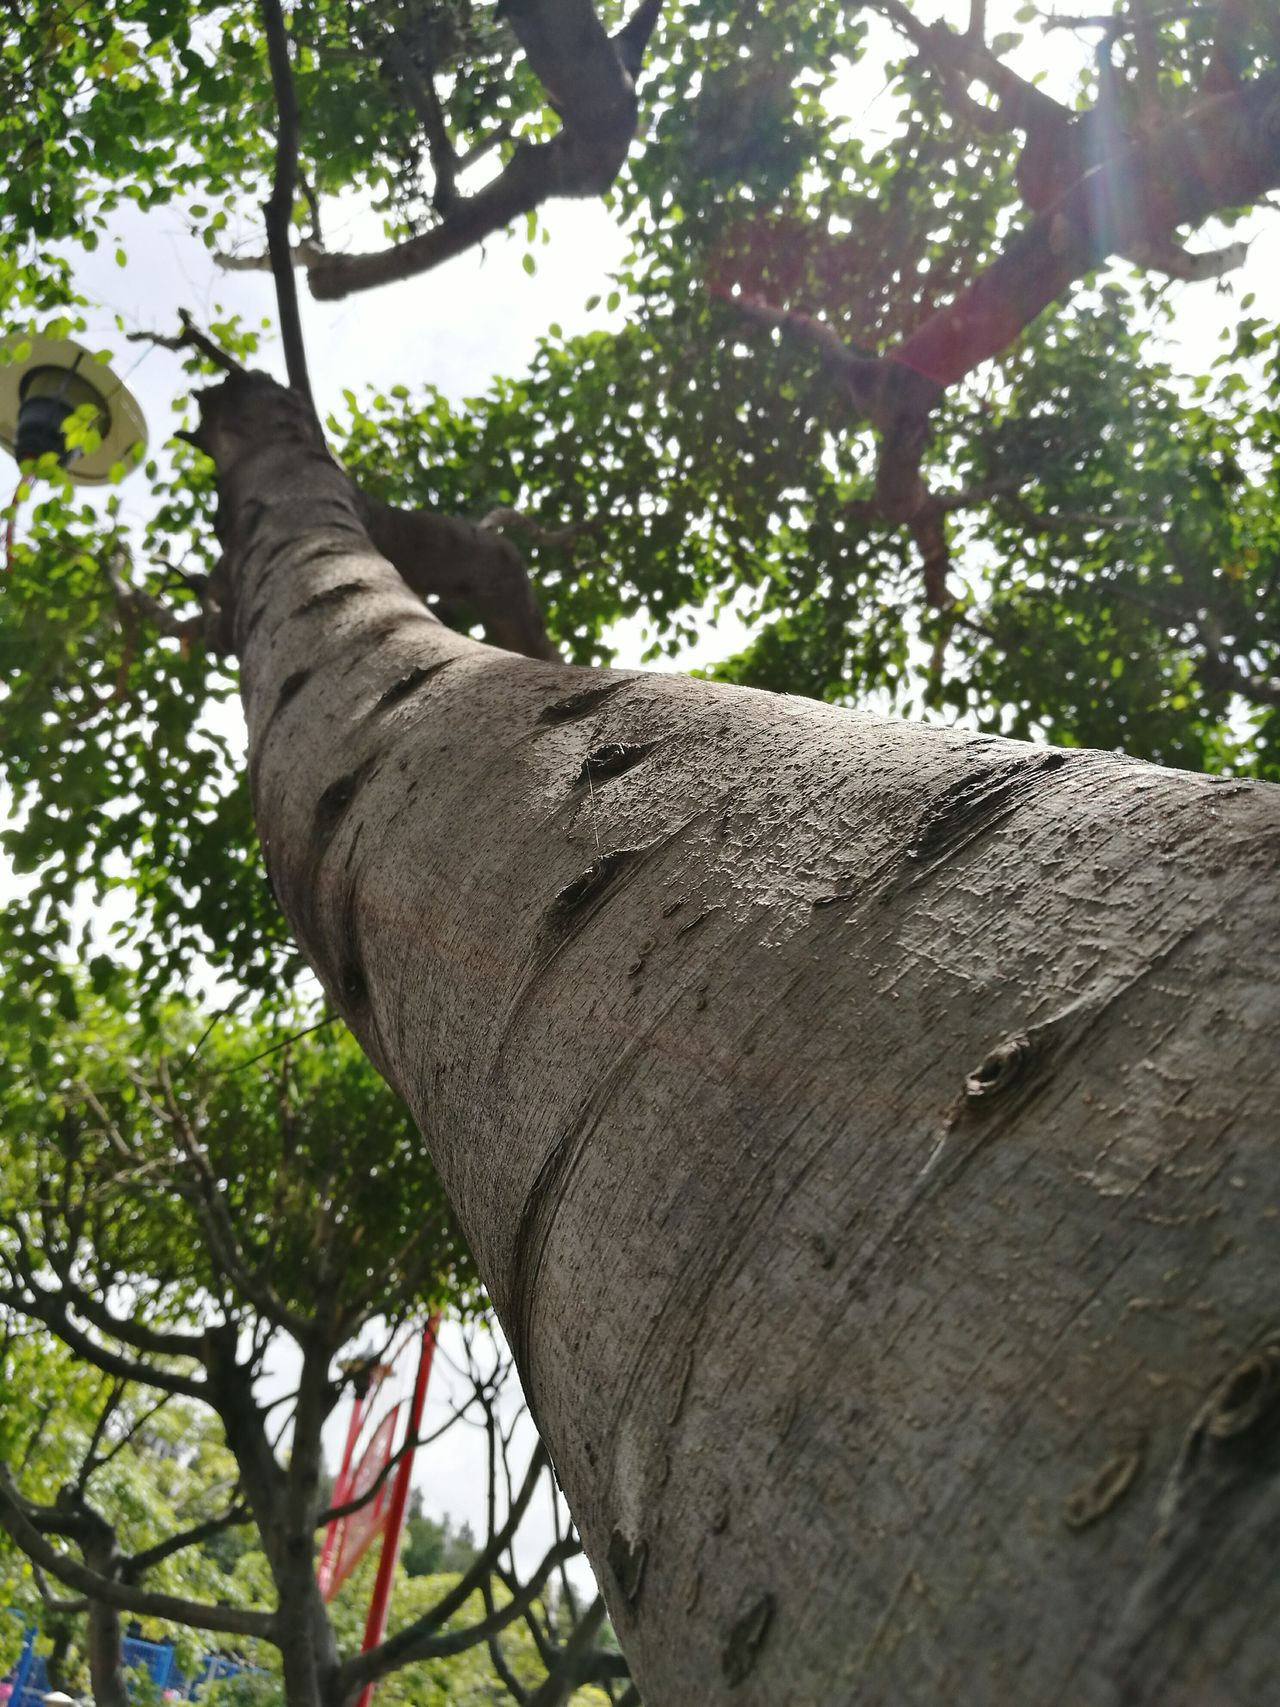 Tree Tree Trunk Low Angle View Growth Branch Day Nature Outdoors Green Color Diffusion Diffuser Tree Branches Trees And Nature Diffused Treetastic Tree_collection  Treecollection Tree Tree Trunk Trees